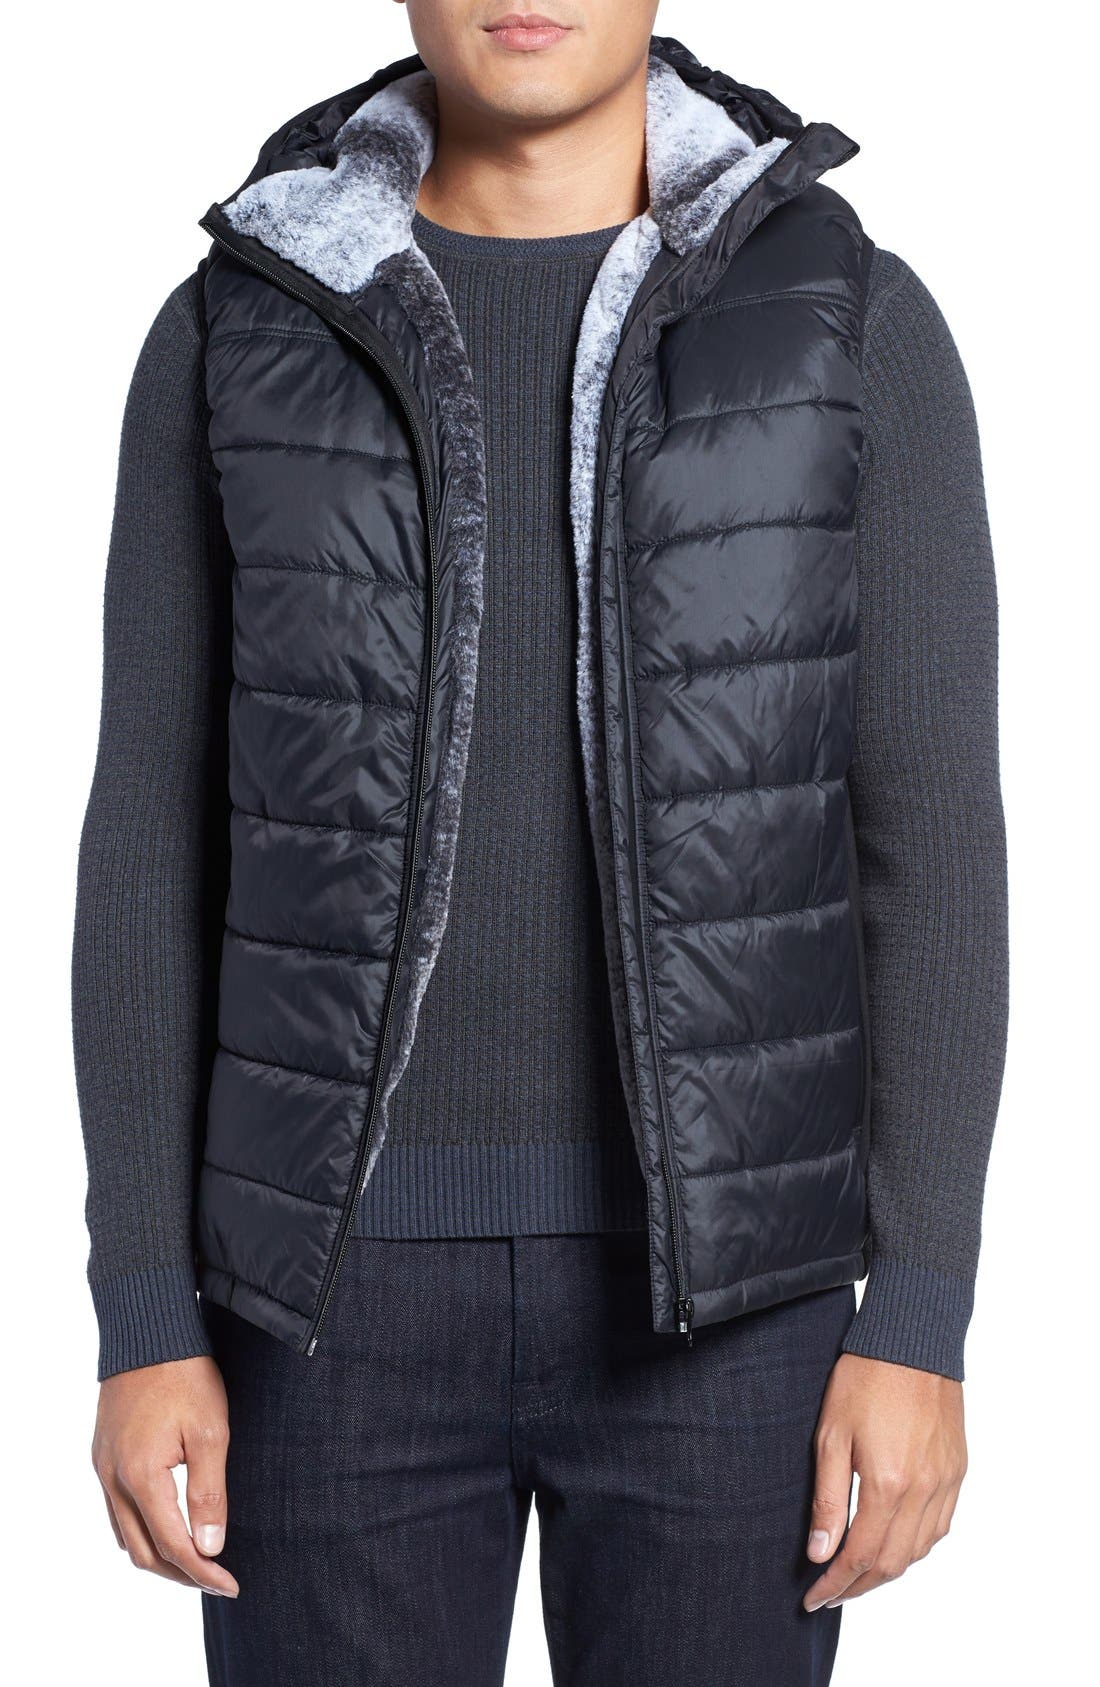 Alternate Image 1 Selected - Vince Camuto Hooded Faux Fur Lined Vest